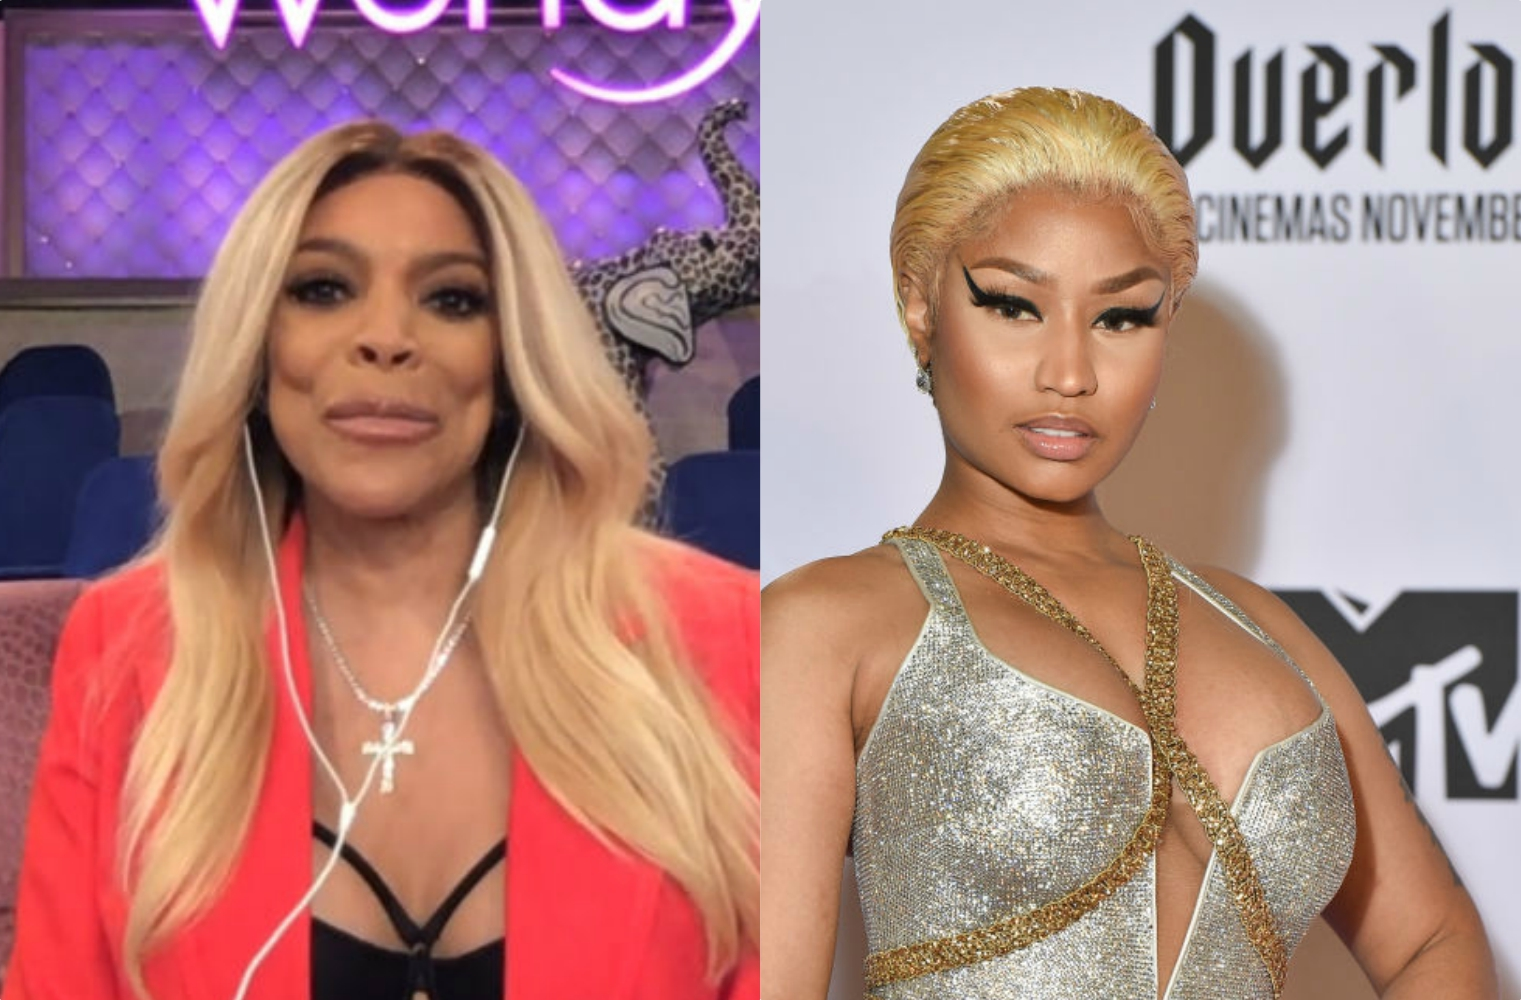 Wendy Williams Nicki minaj